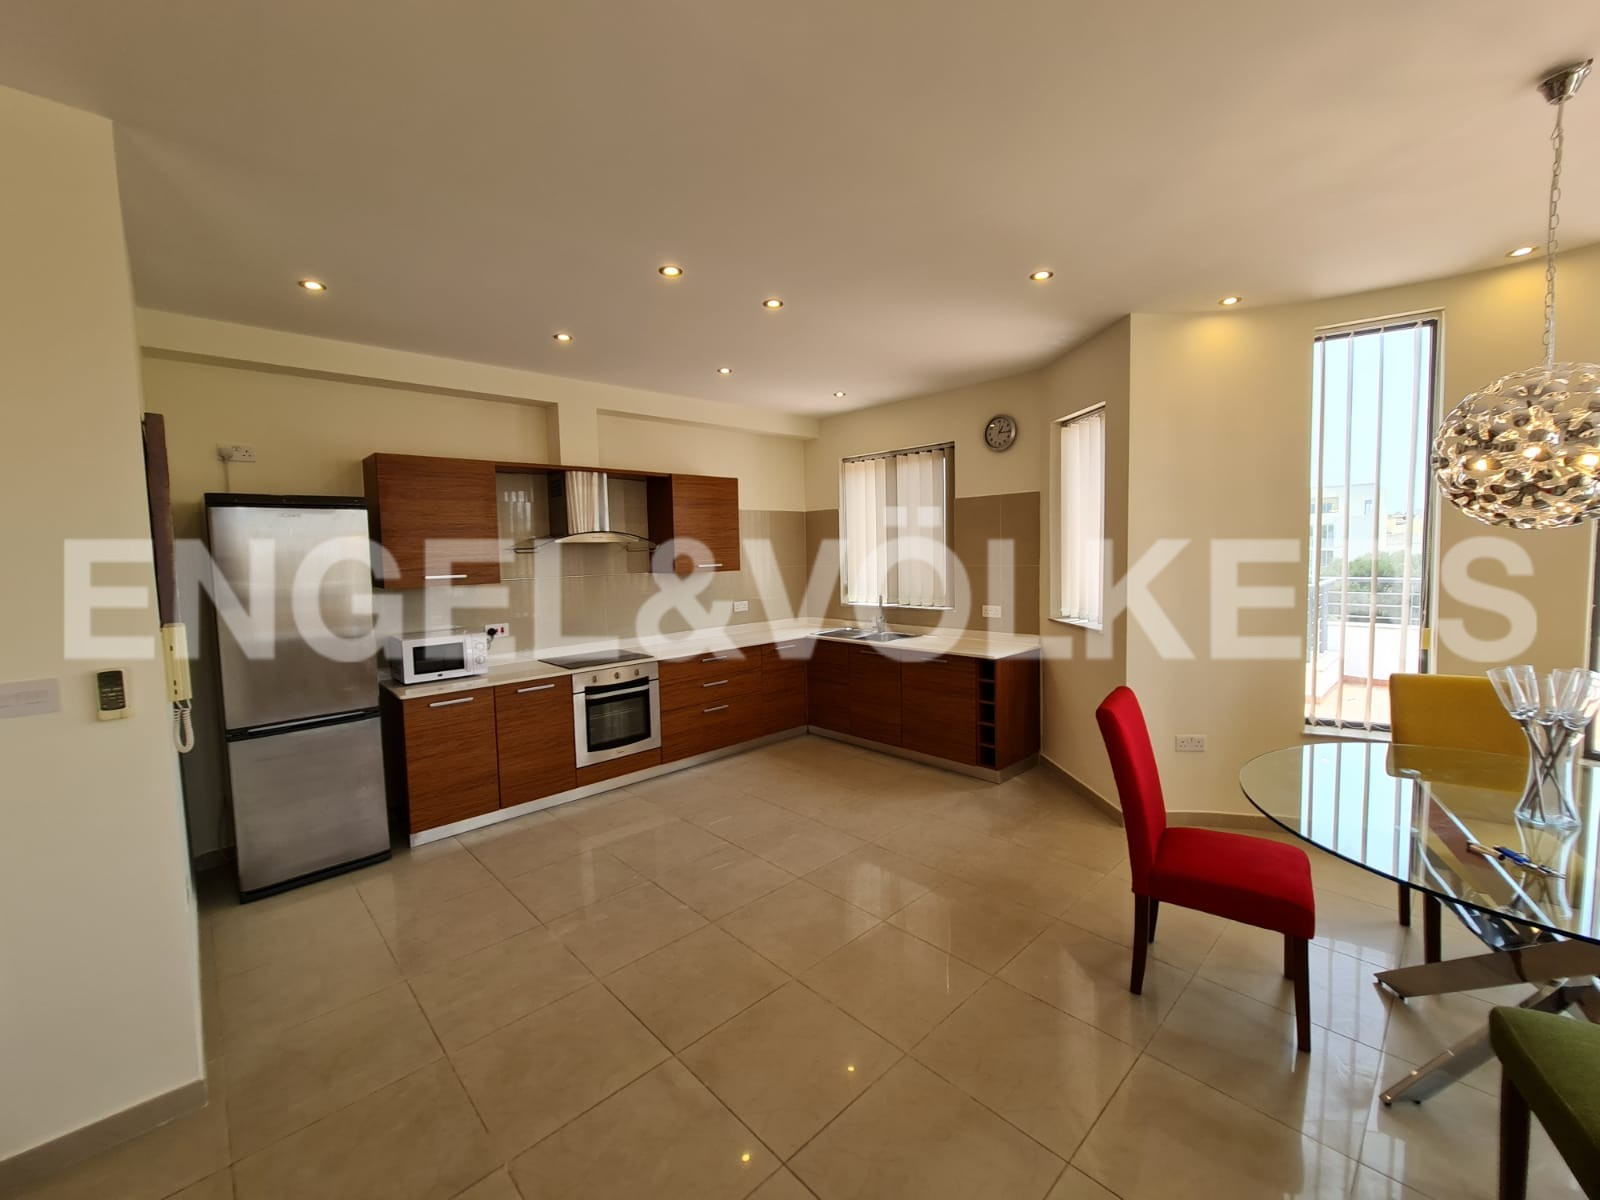 Apartment in Msida - Kitchen / Living / Dining